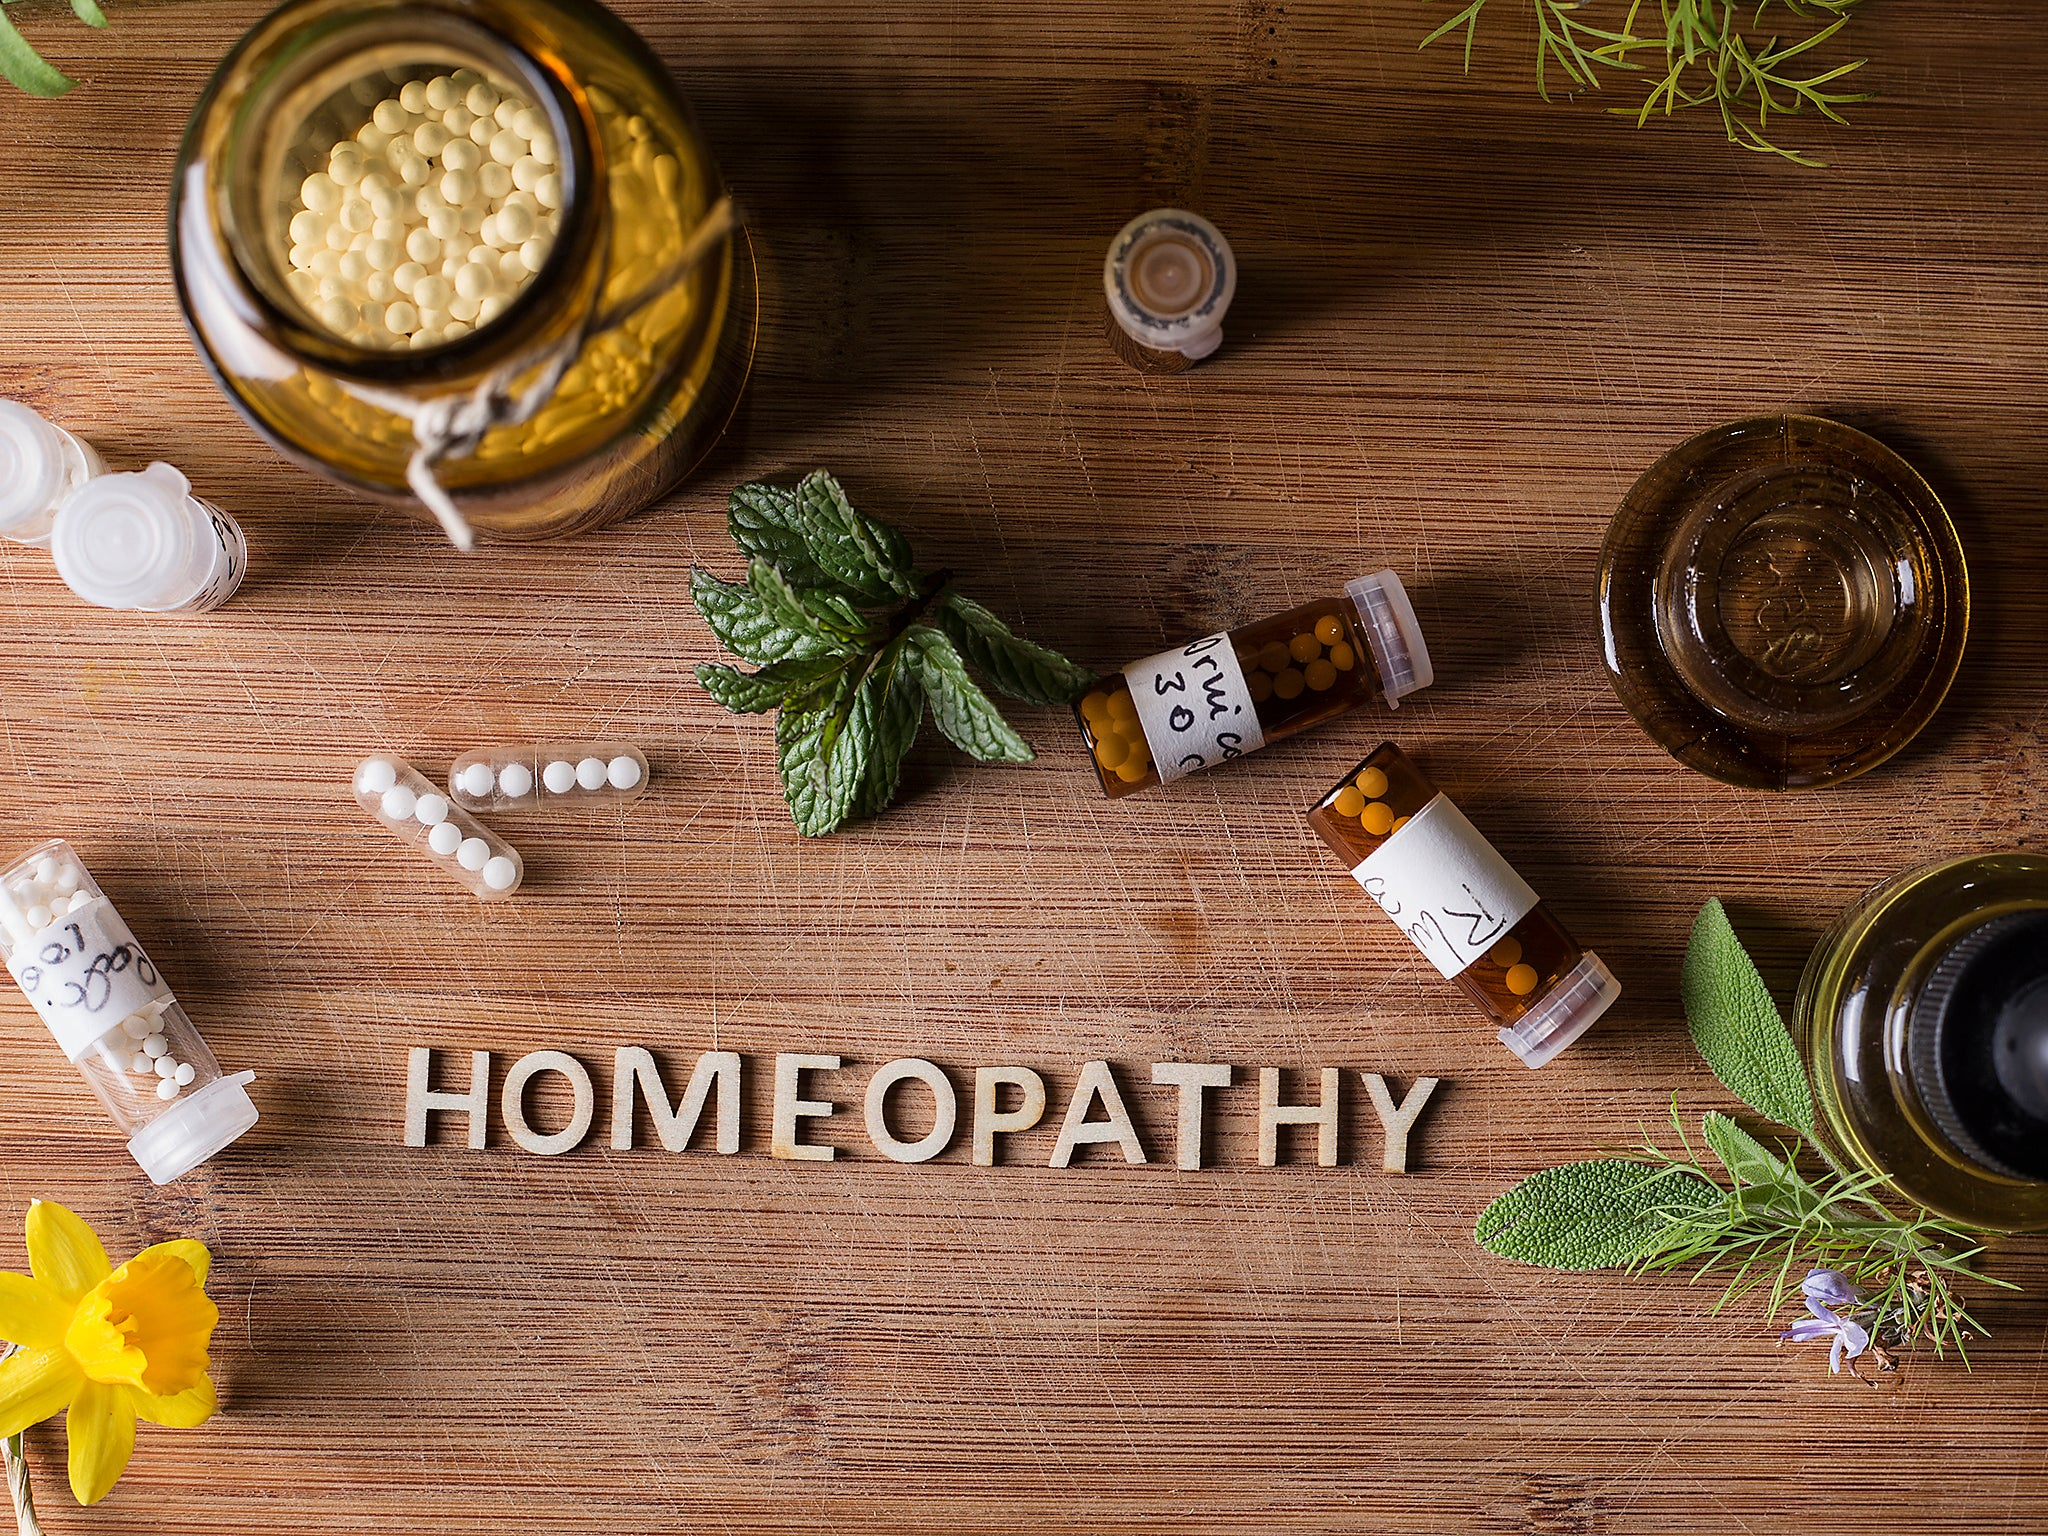 Homeopathy is 'risky nonsense' according to 29 science bodies